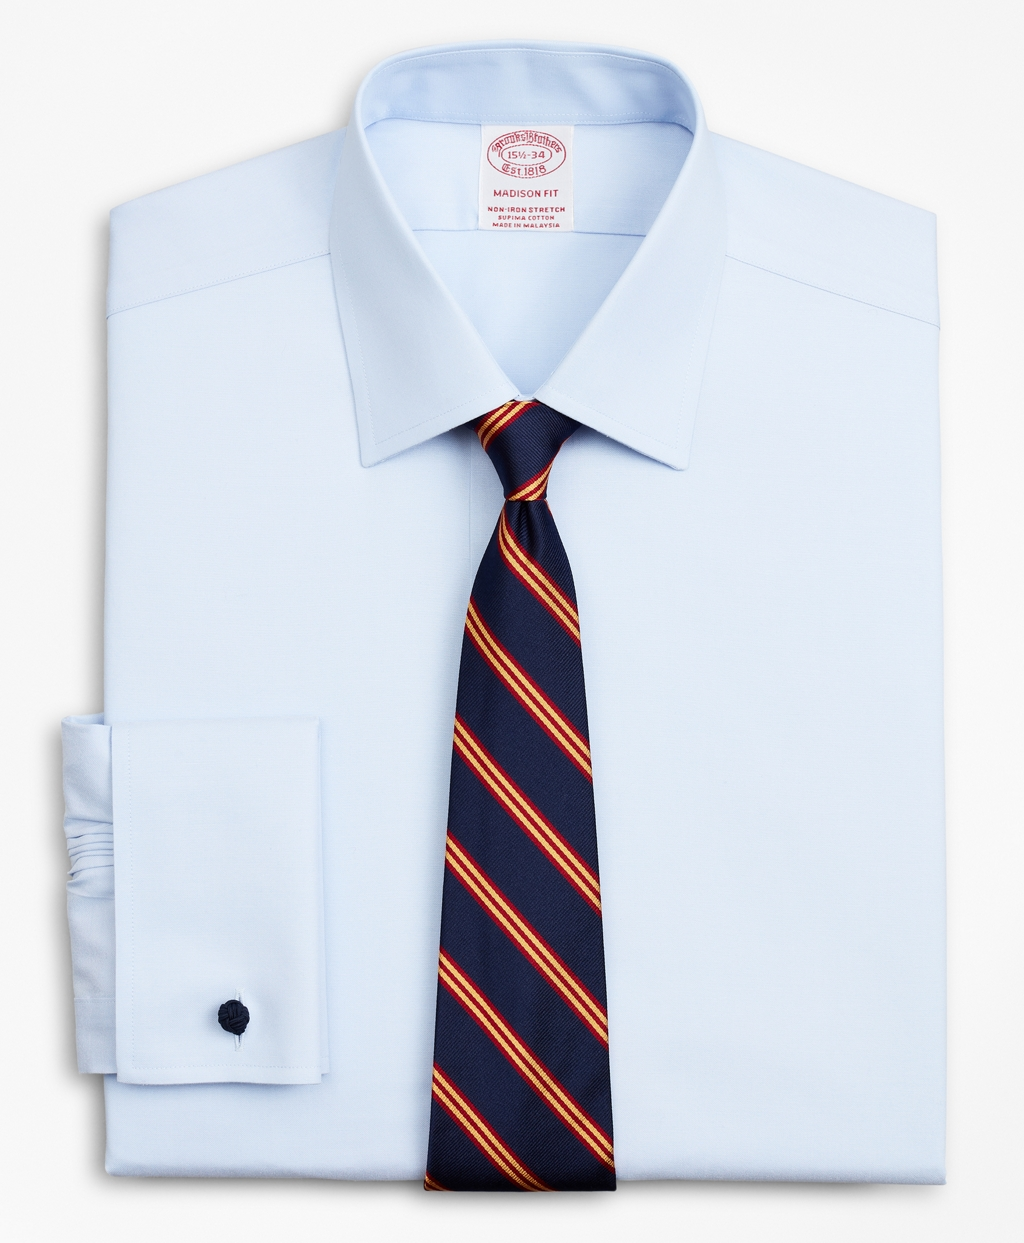 Brooksbrothers Stretch Madison Relaxed-Fit Dress Shirt, Non-Iron Pinpoint Ainsley Collar French Cuff